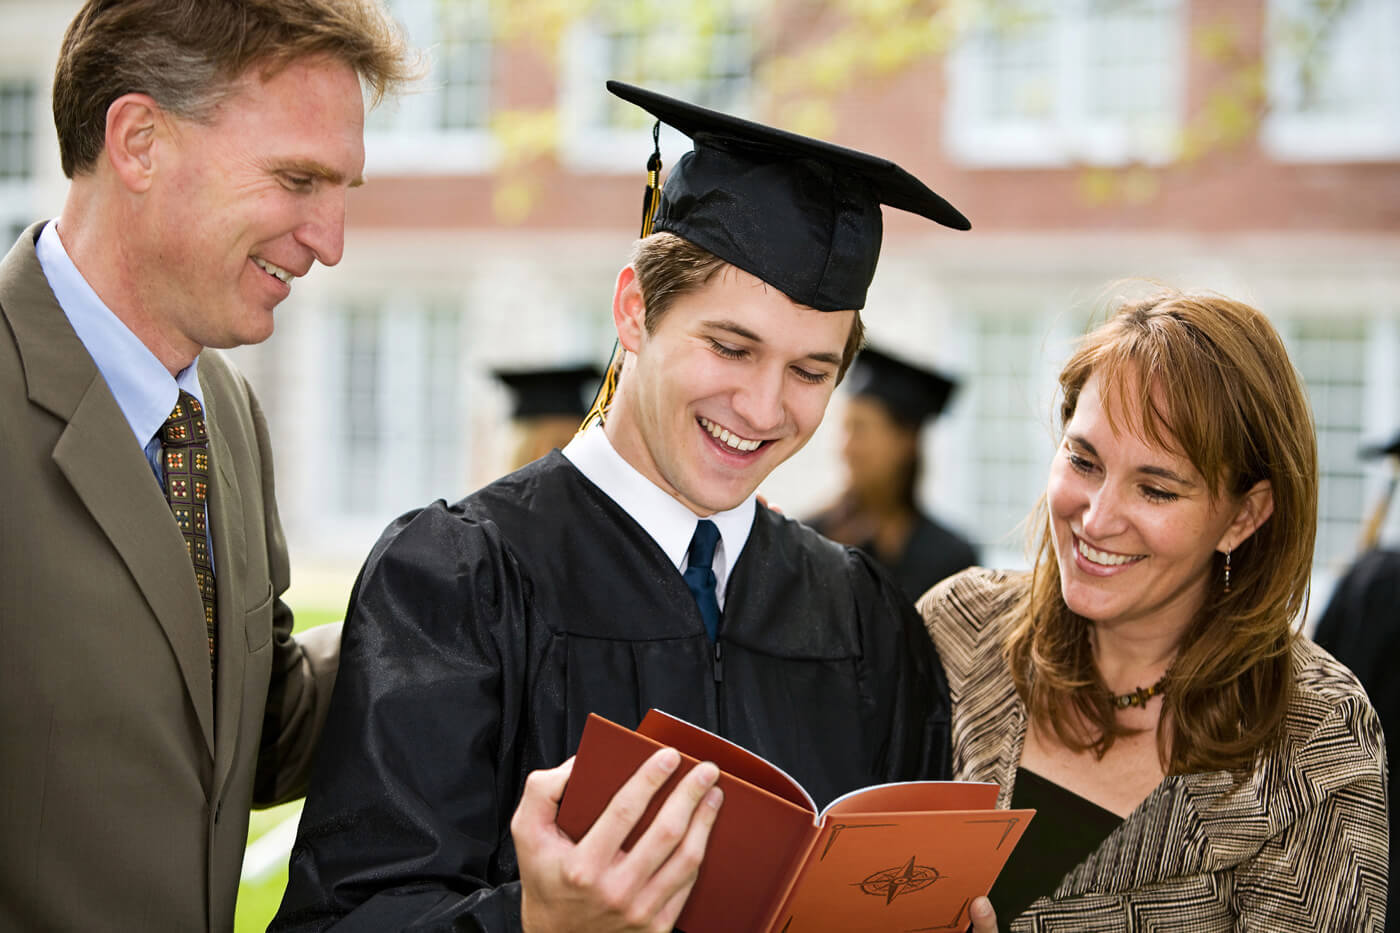 A graduation gift of your words of encouragement and advice is the best gift for your graduate.